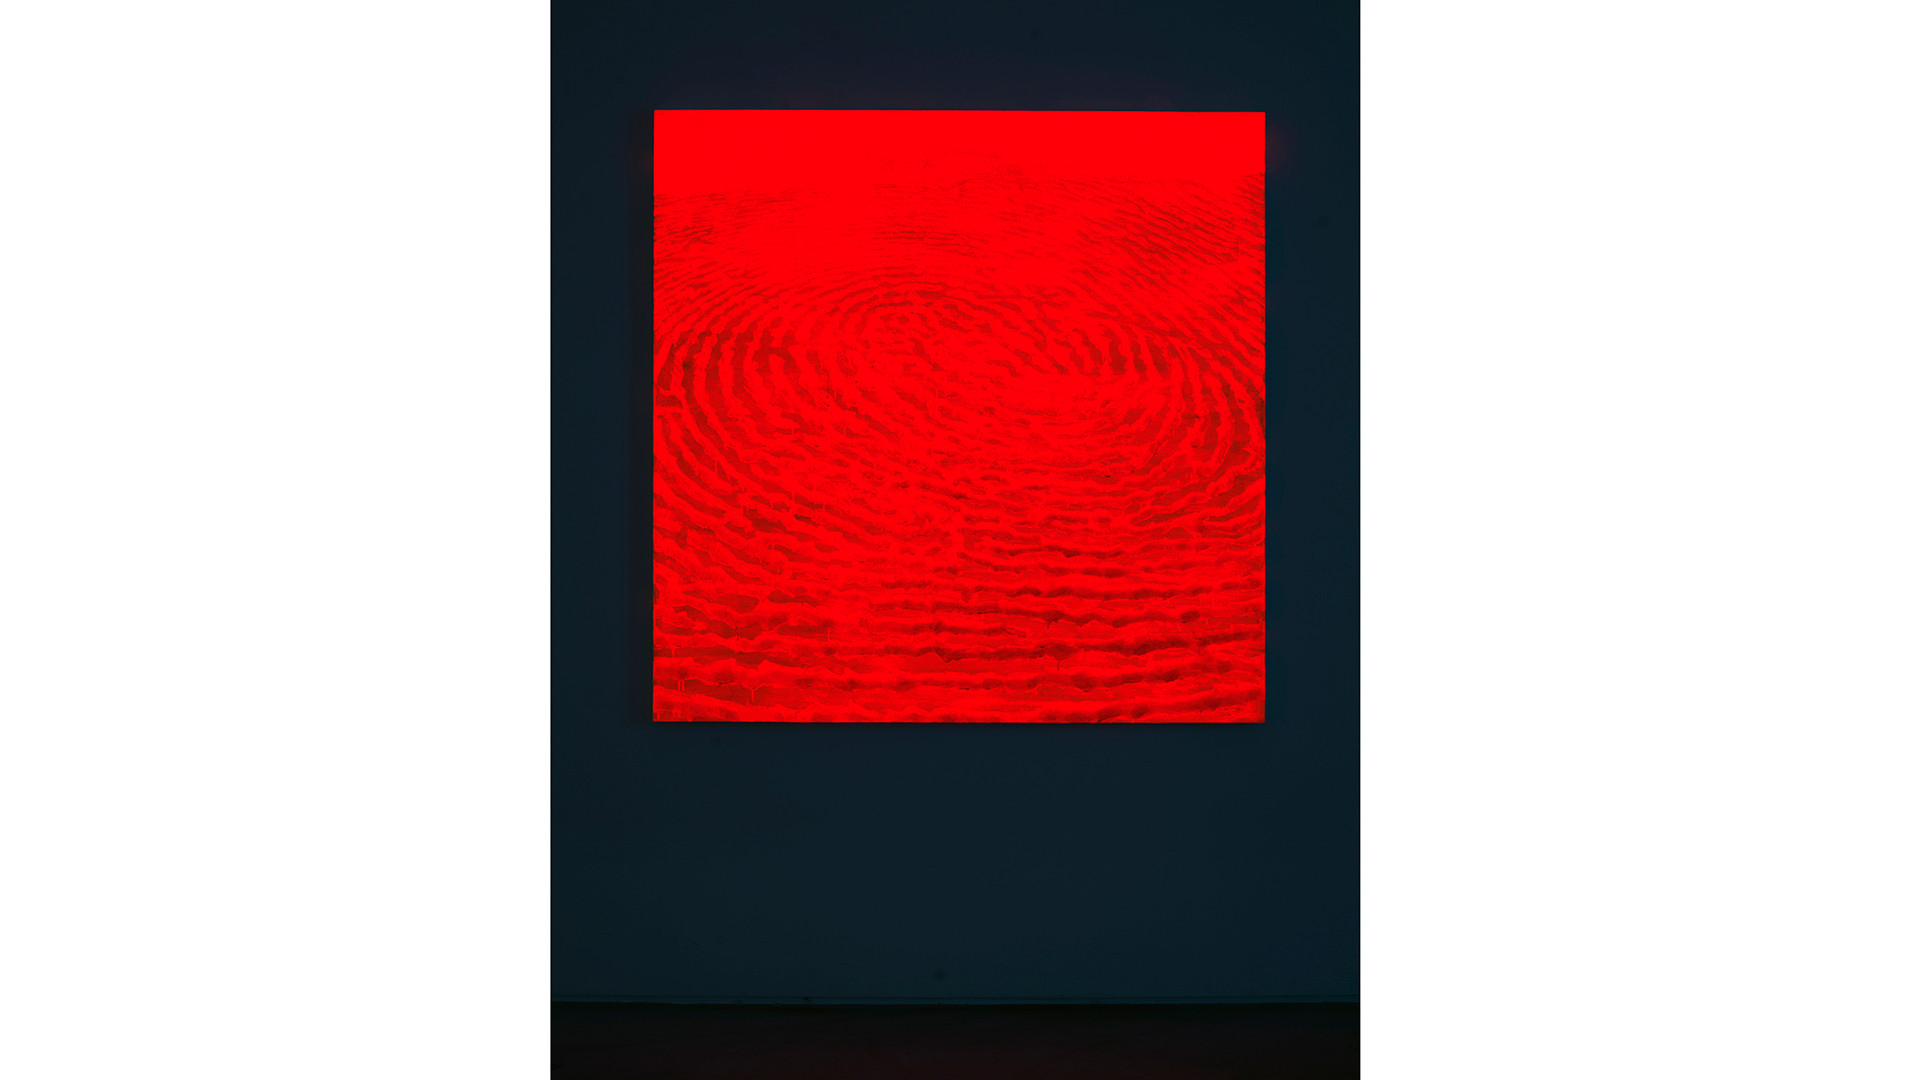 Light Lines_#2180102_2018_acrylic&phosphorescent pigment on canvas_137 x 137 cm